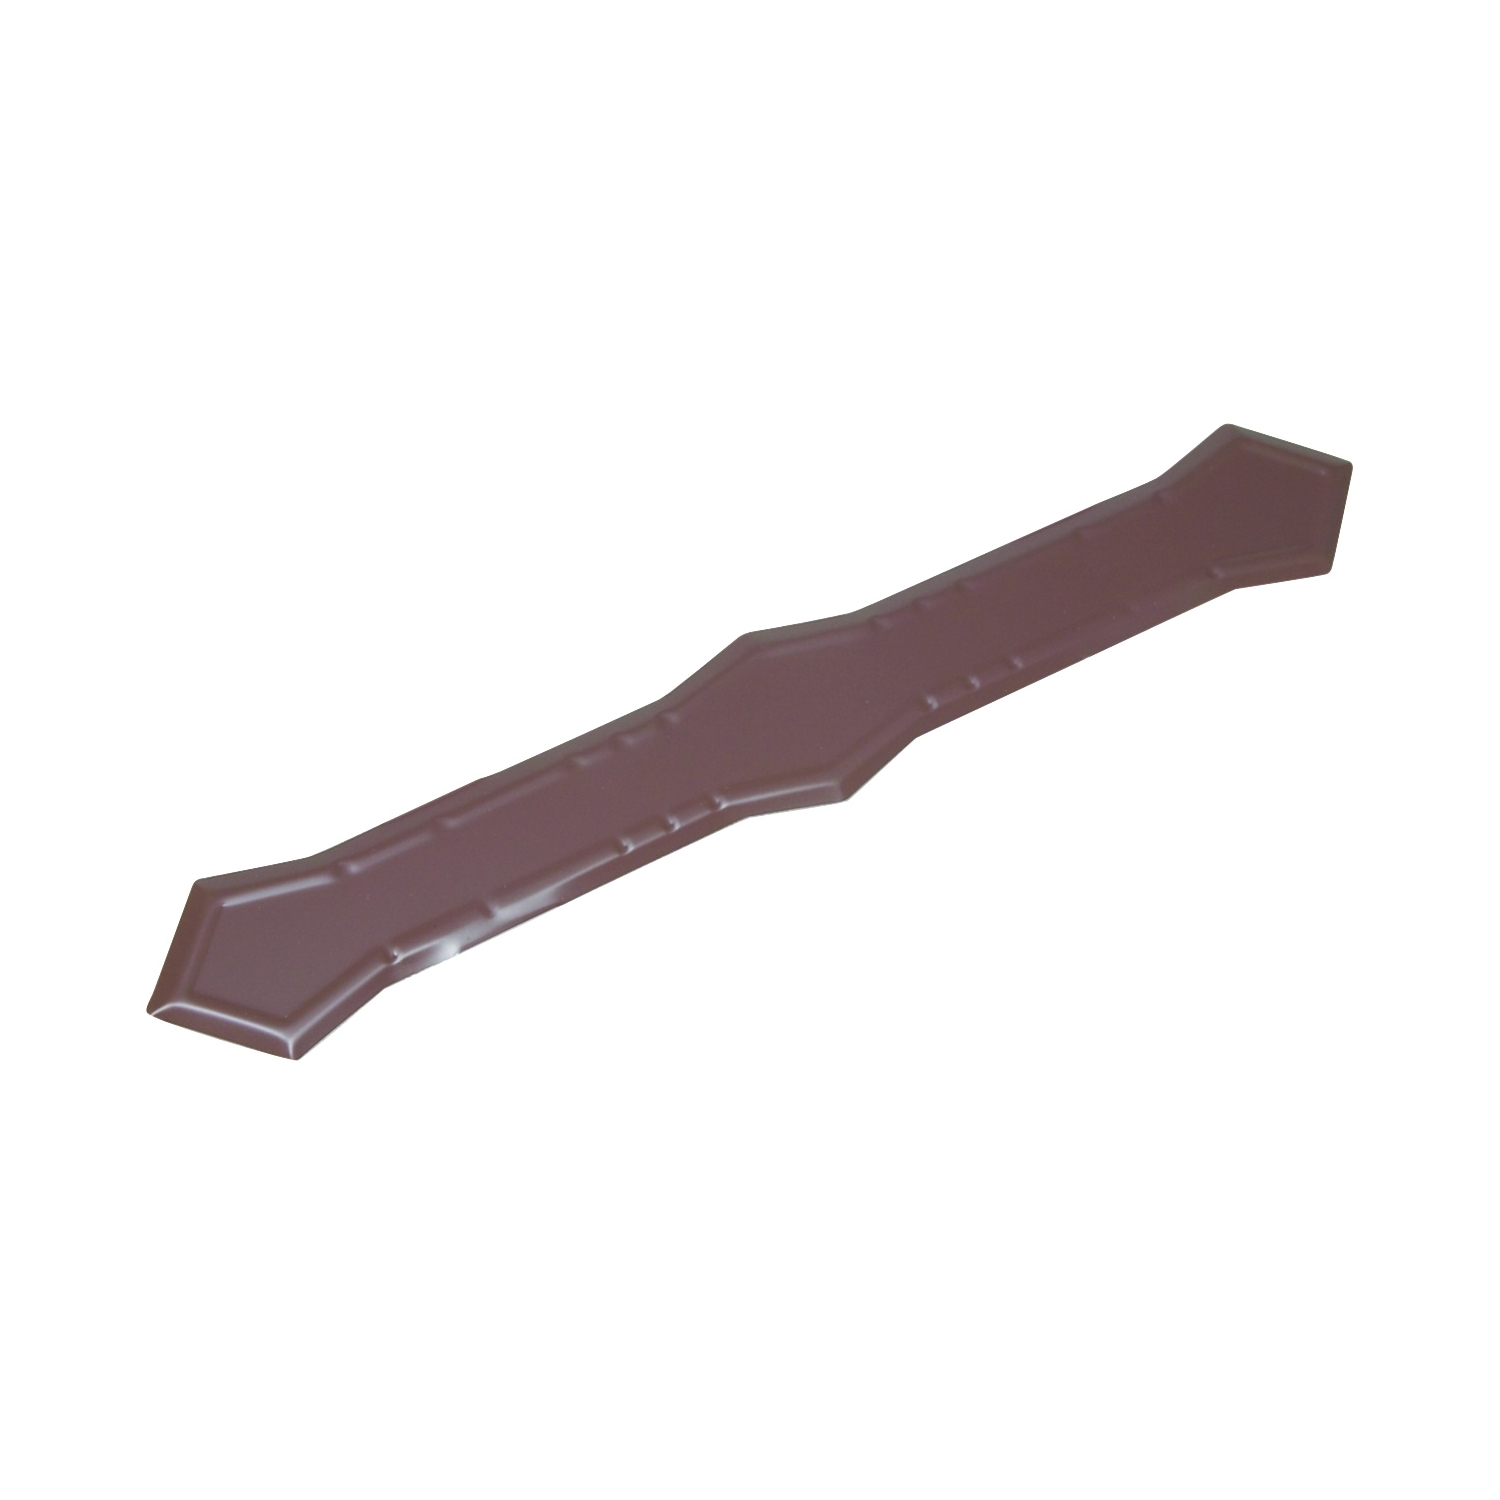 Picture of Amerimax 2522919 Downspout Band, Aluminum, Brown, Wall Mounting